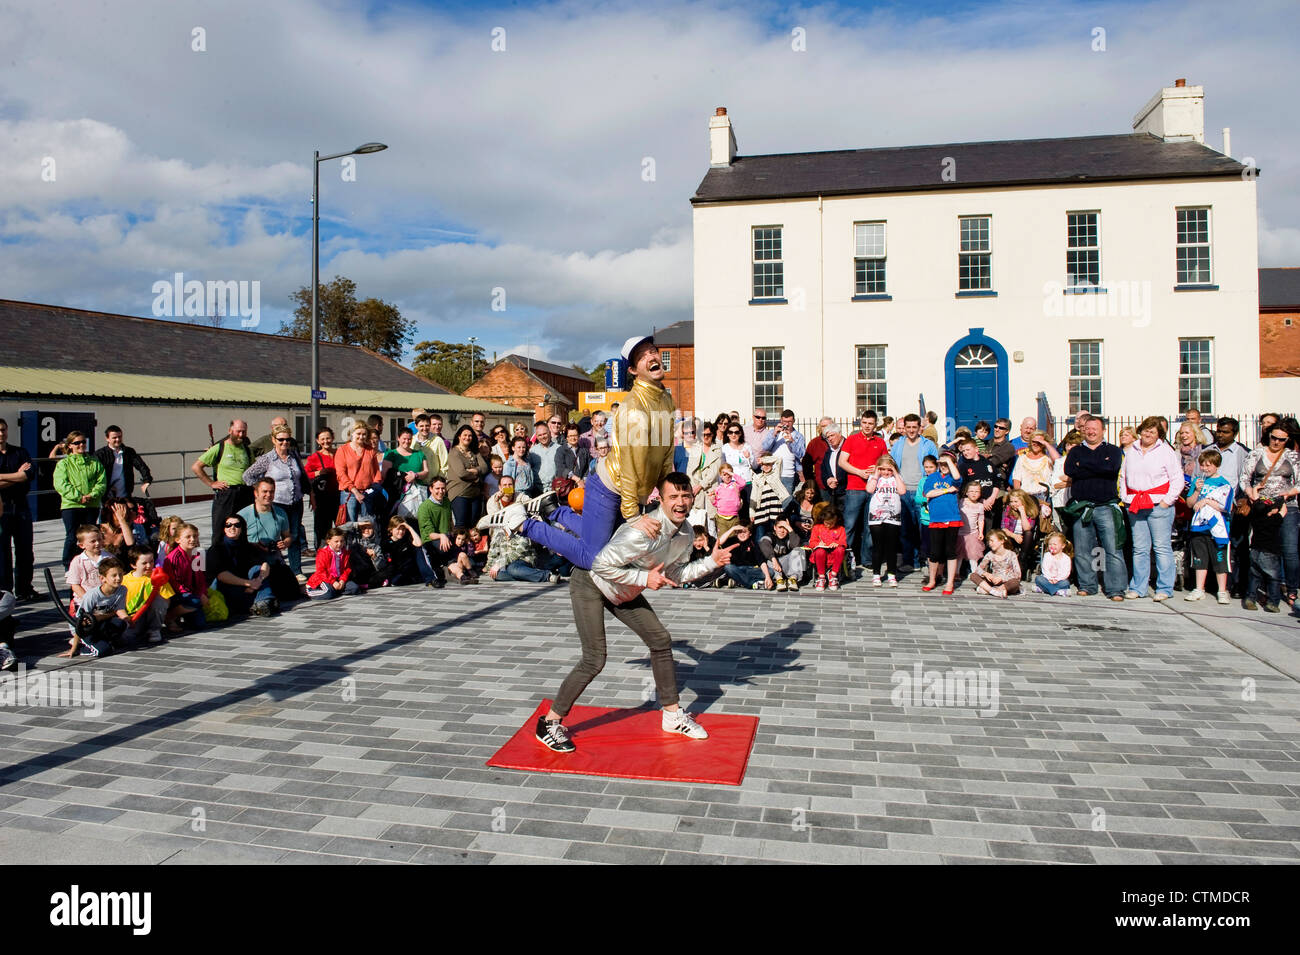 Ebrington Square, Derry, Northern Ireland - Stock Image